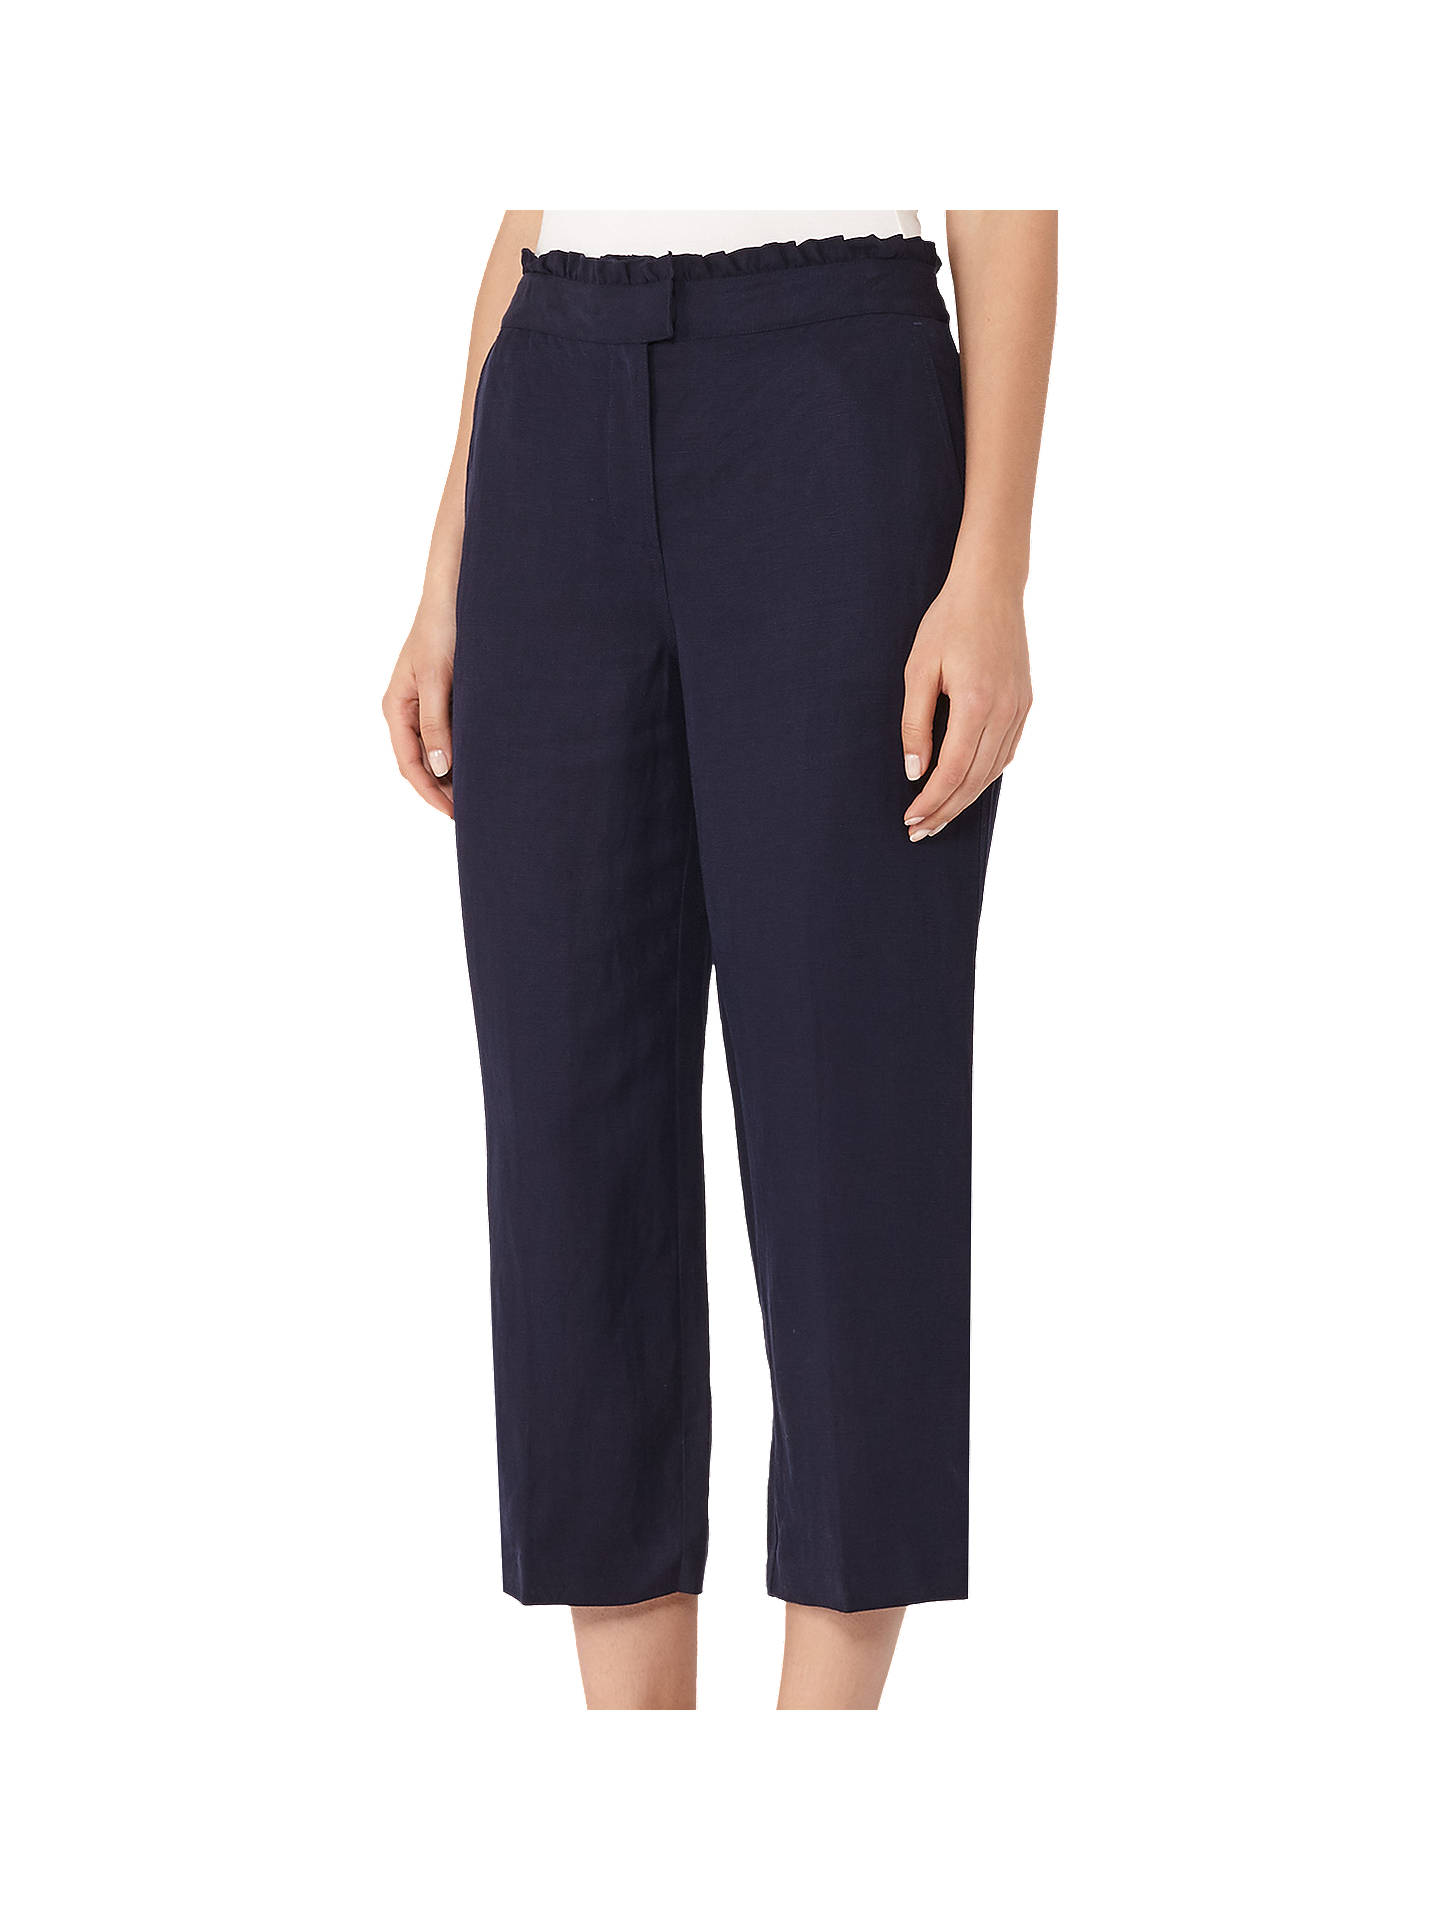 BuyReiss Launi Cropped Trousers, Night Navy, 6 Online at johnlewis.com